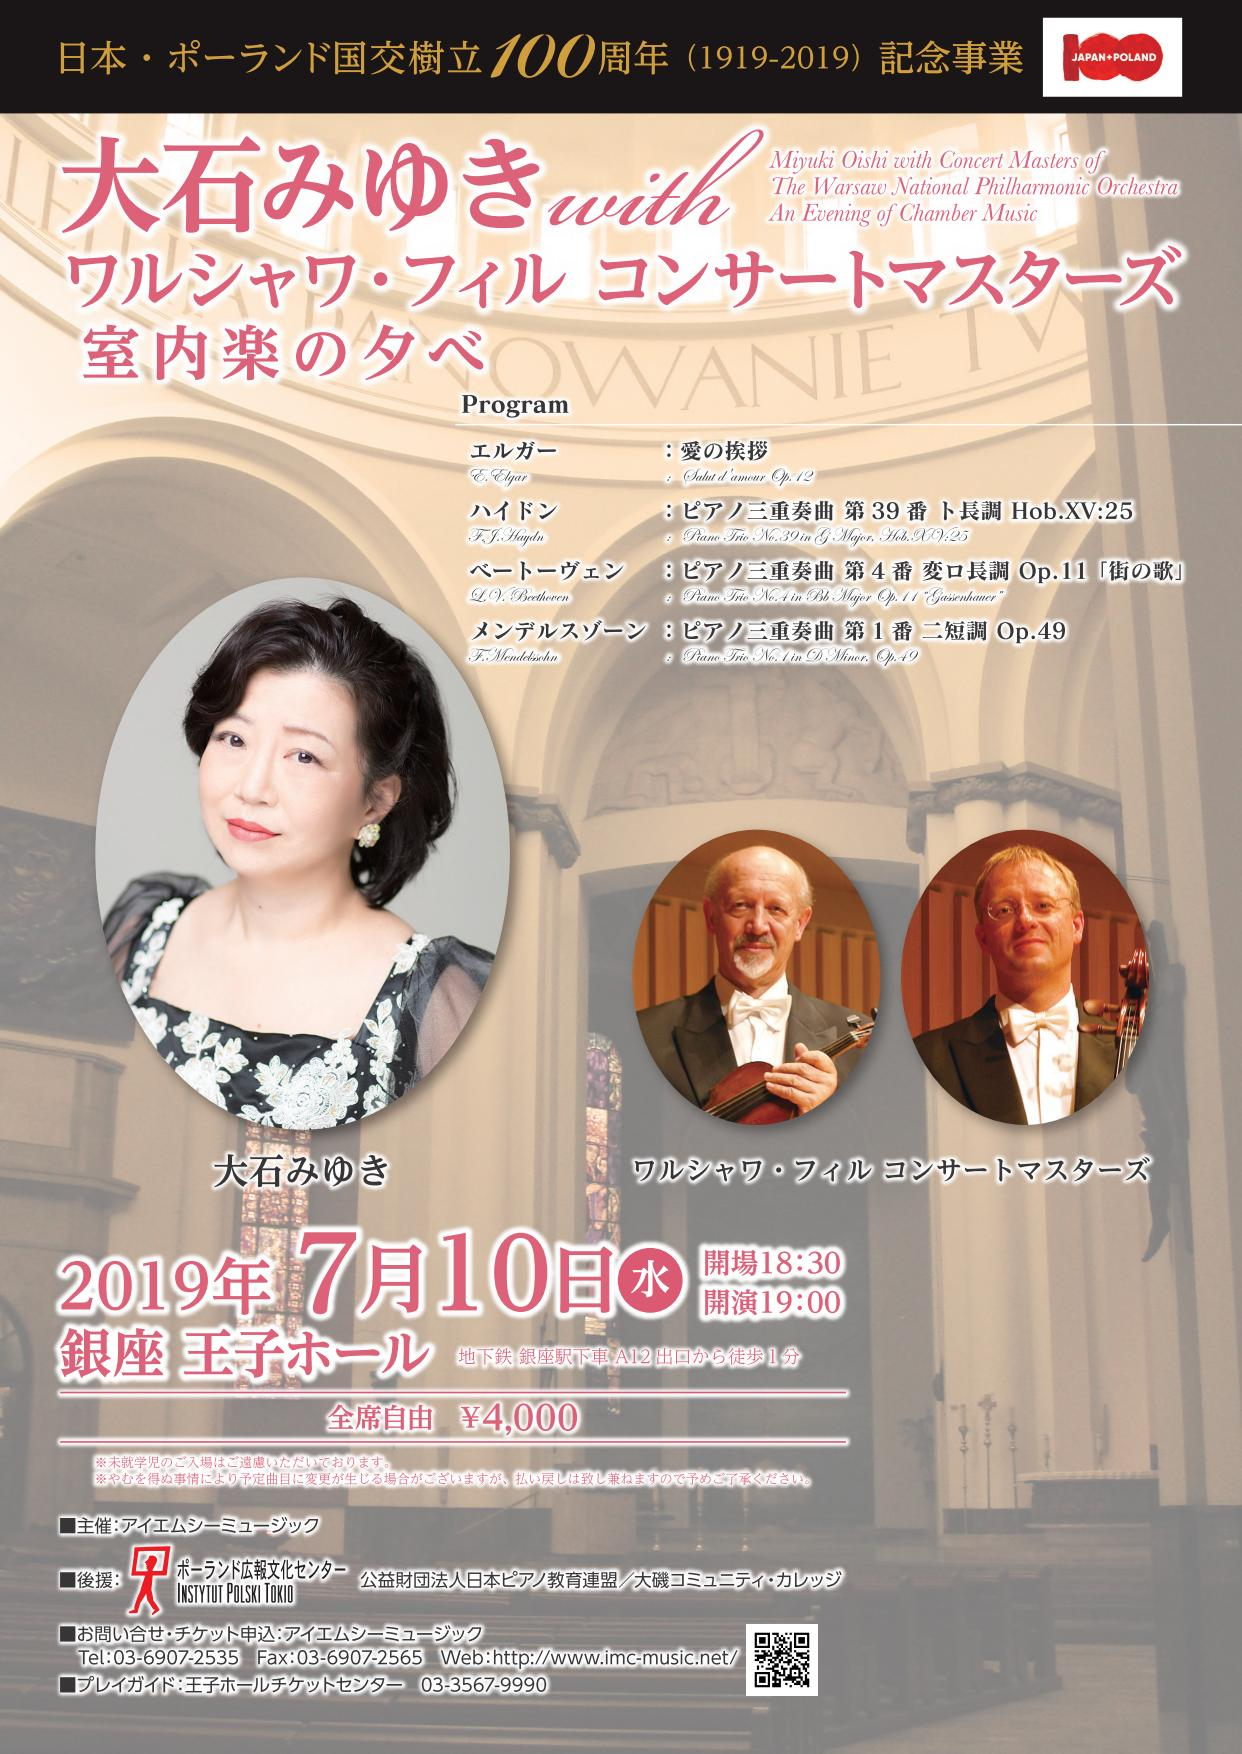 Miyuki Oishi with Concert Masters of The Warsaw National Philharmonic Orchestra     An Evening of Chamber Music